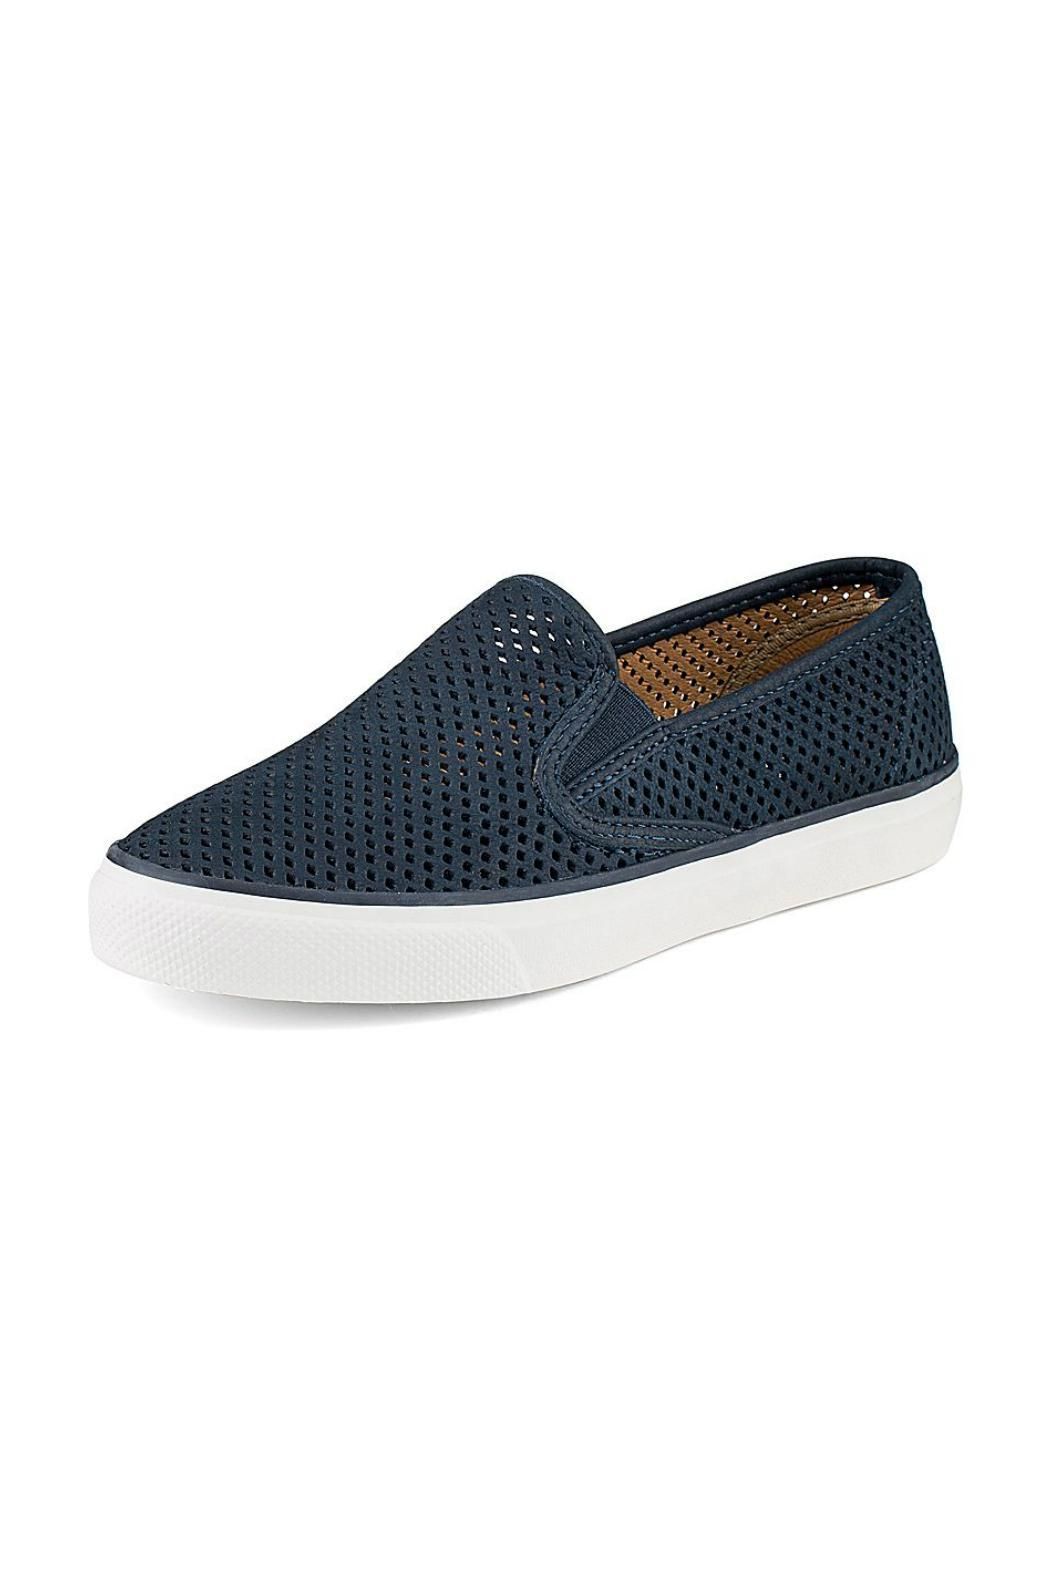 8fd60badedbd Sperry Seaside Perforated Sneaker from Branford by Shoetique ...